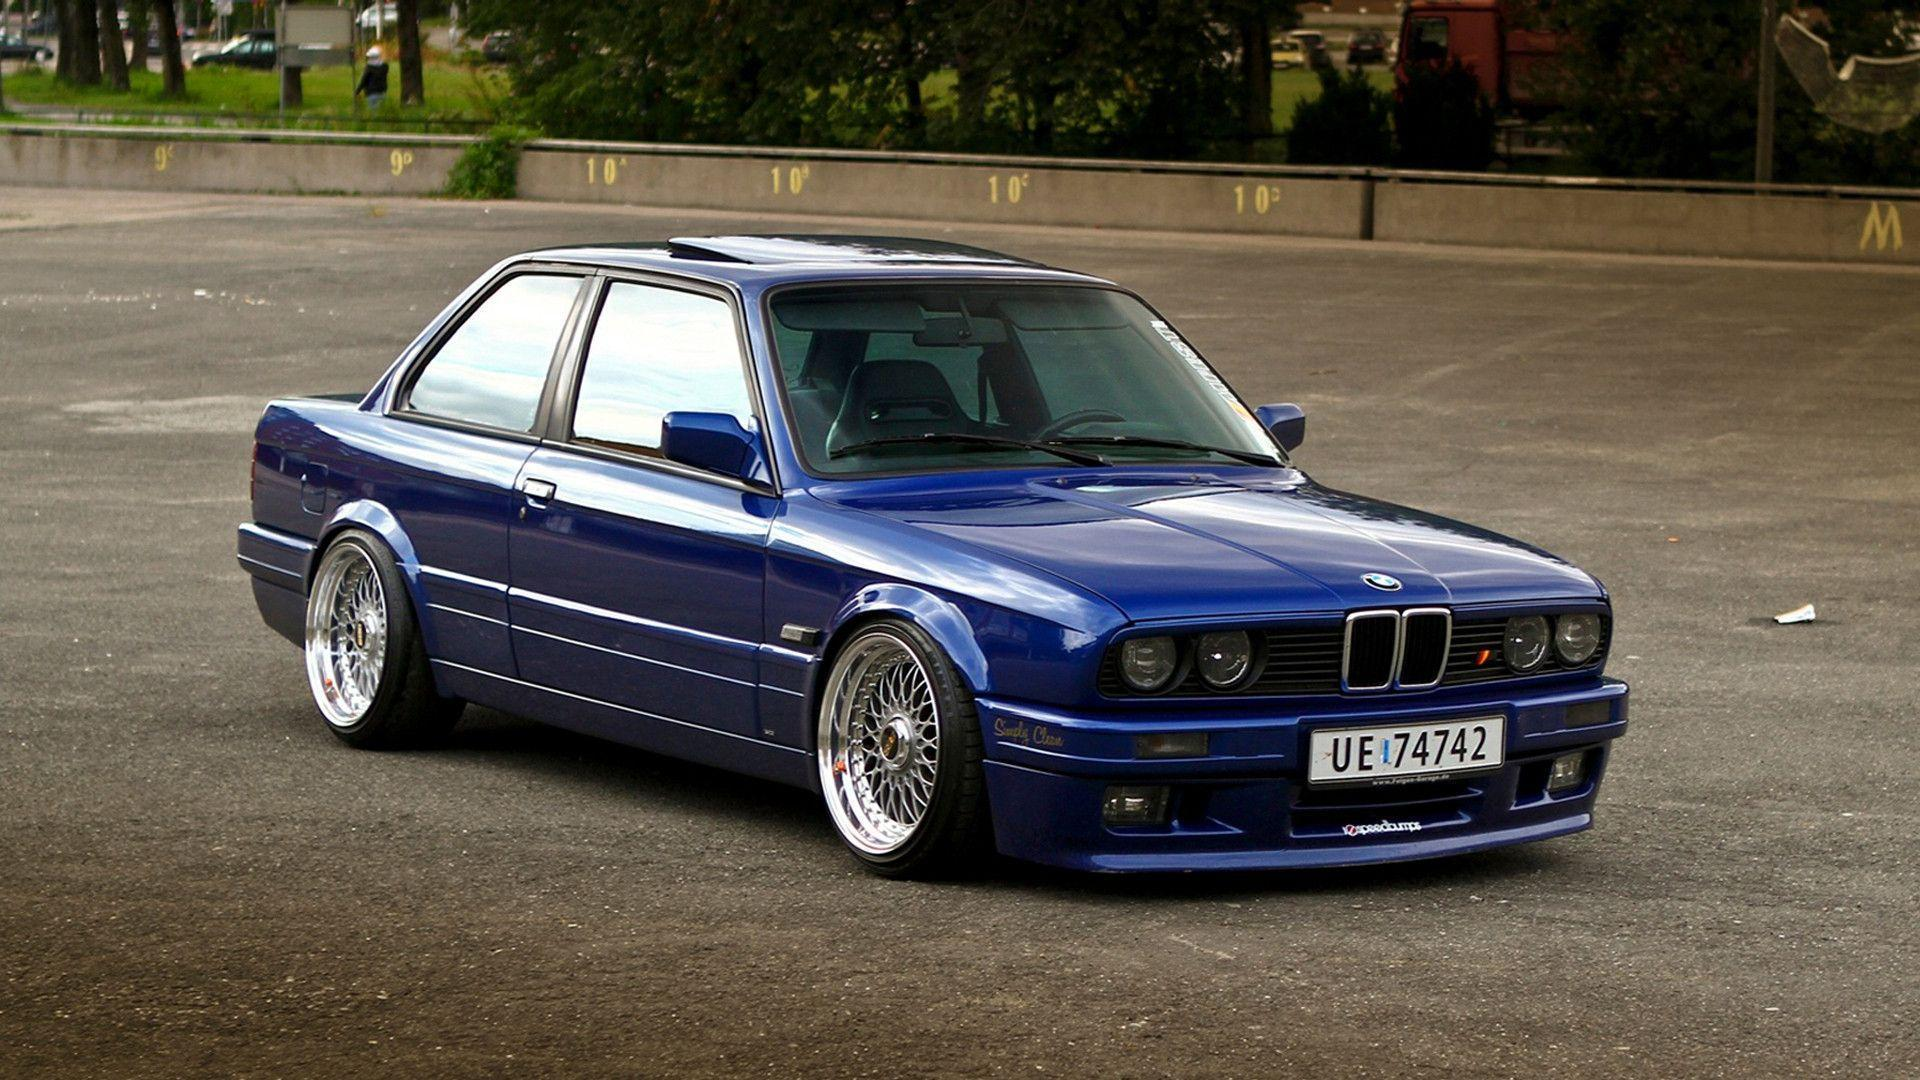 Wallpapers bmw, e30, clean, bmw - car pictures and photos bmw ...